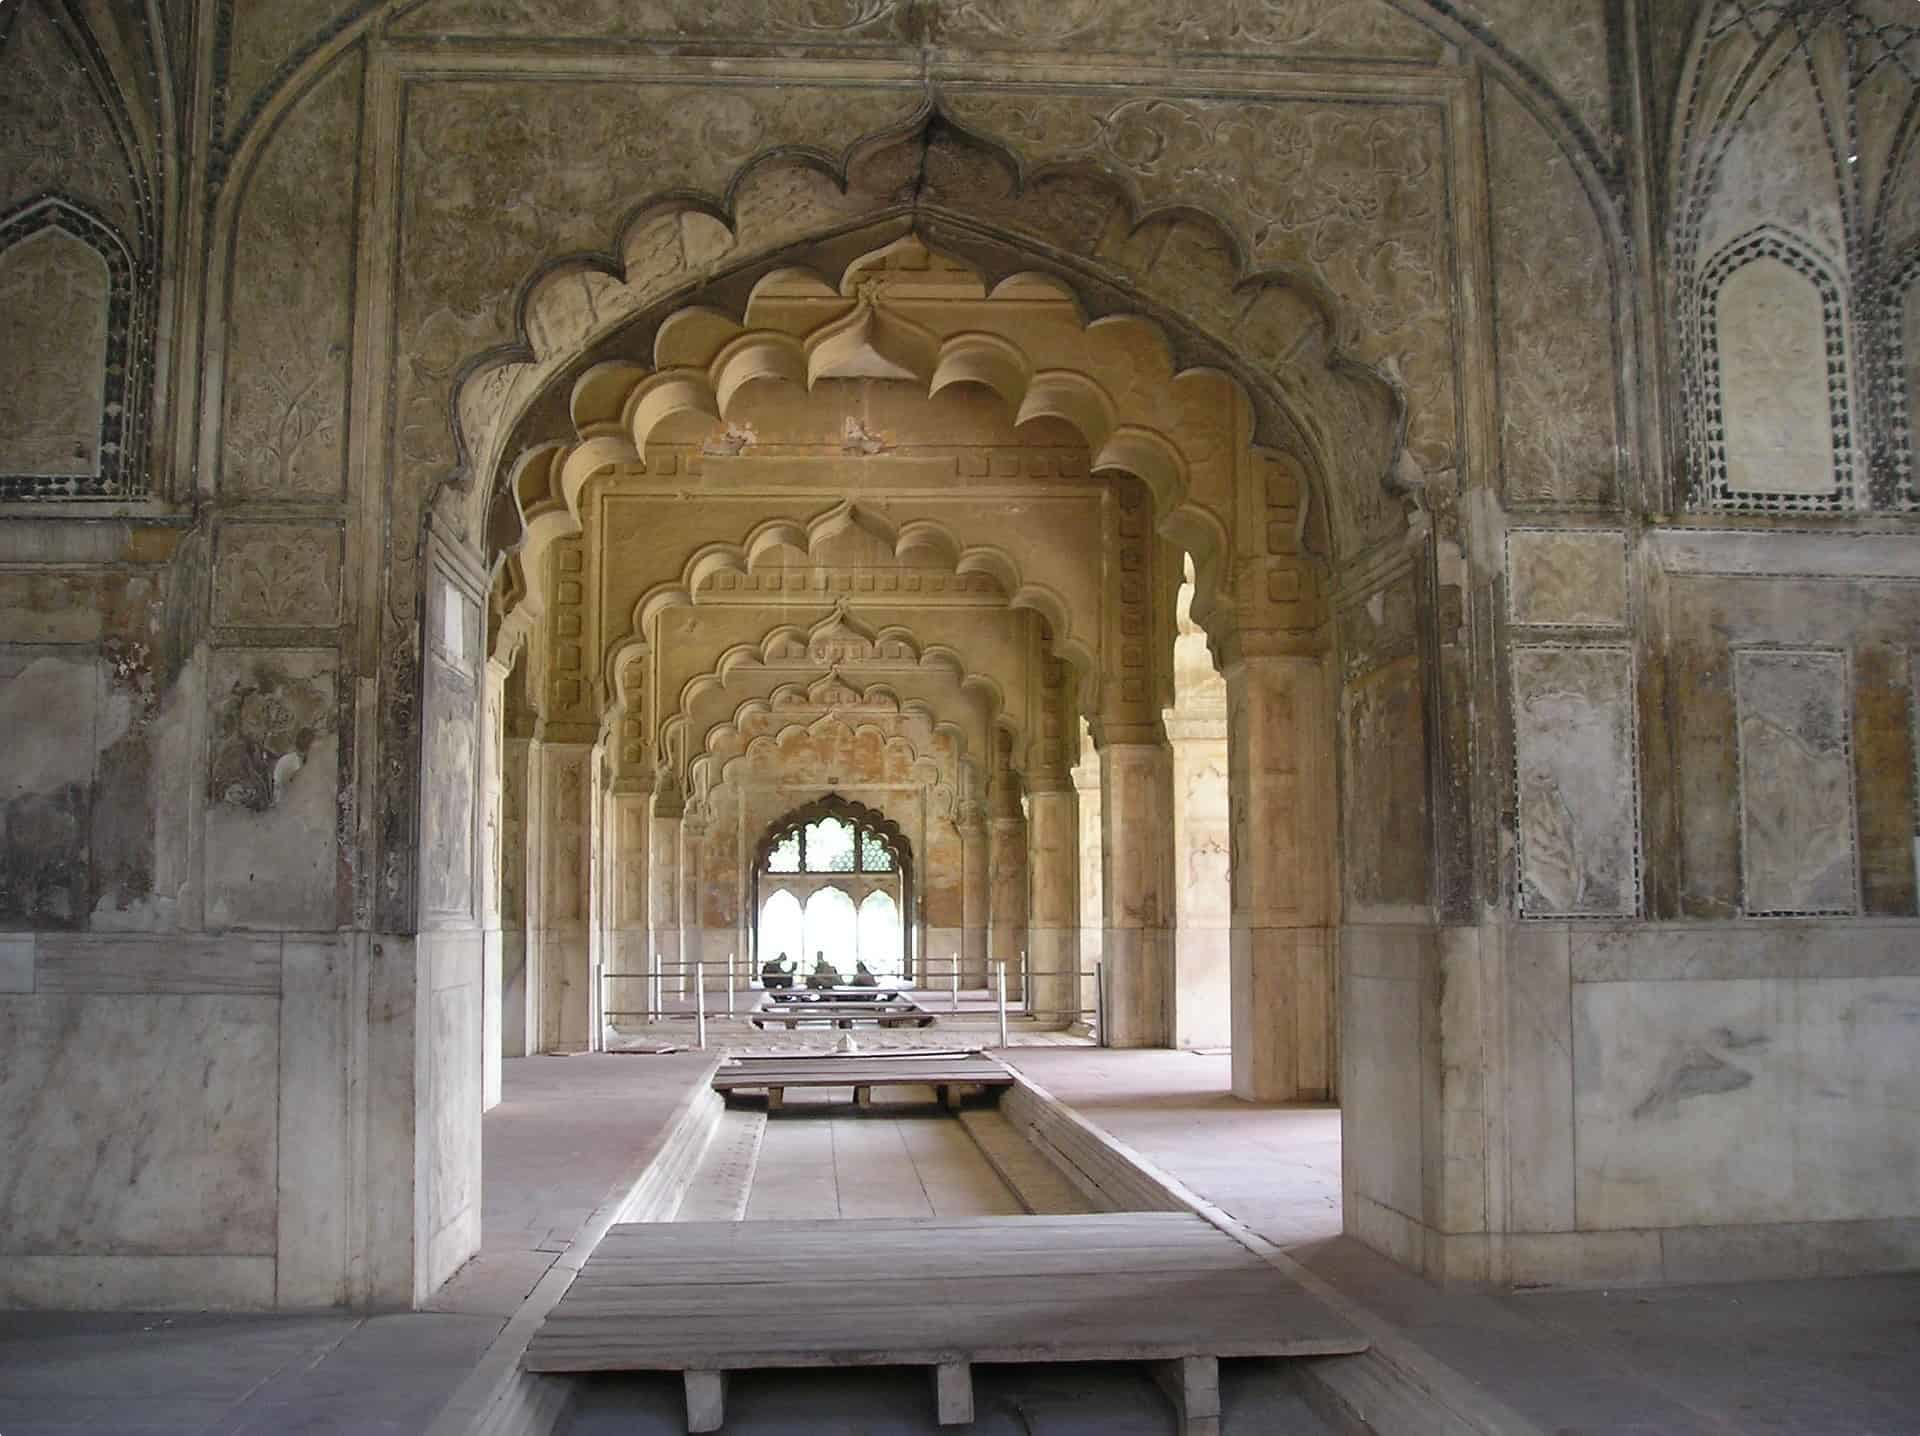 The inside of the Red Fort